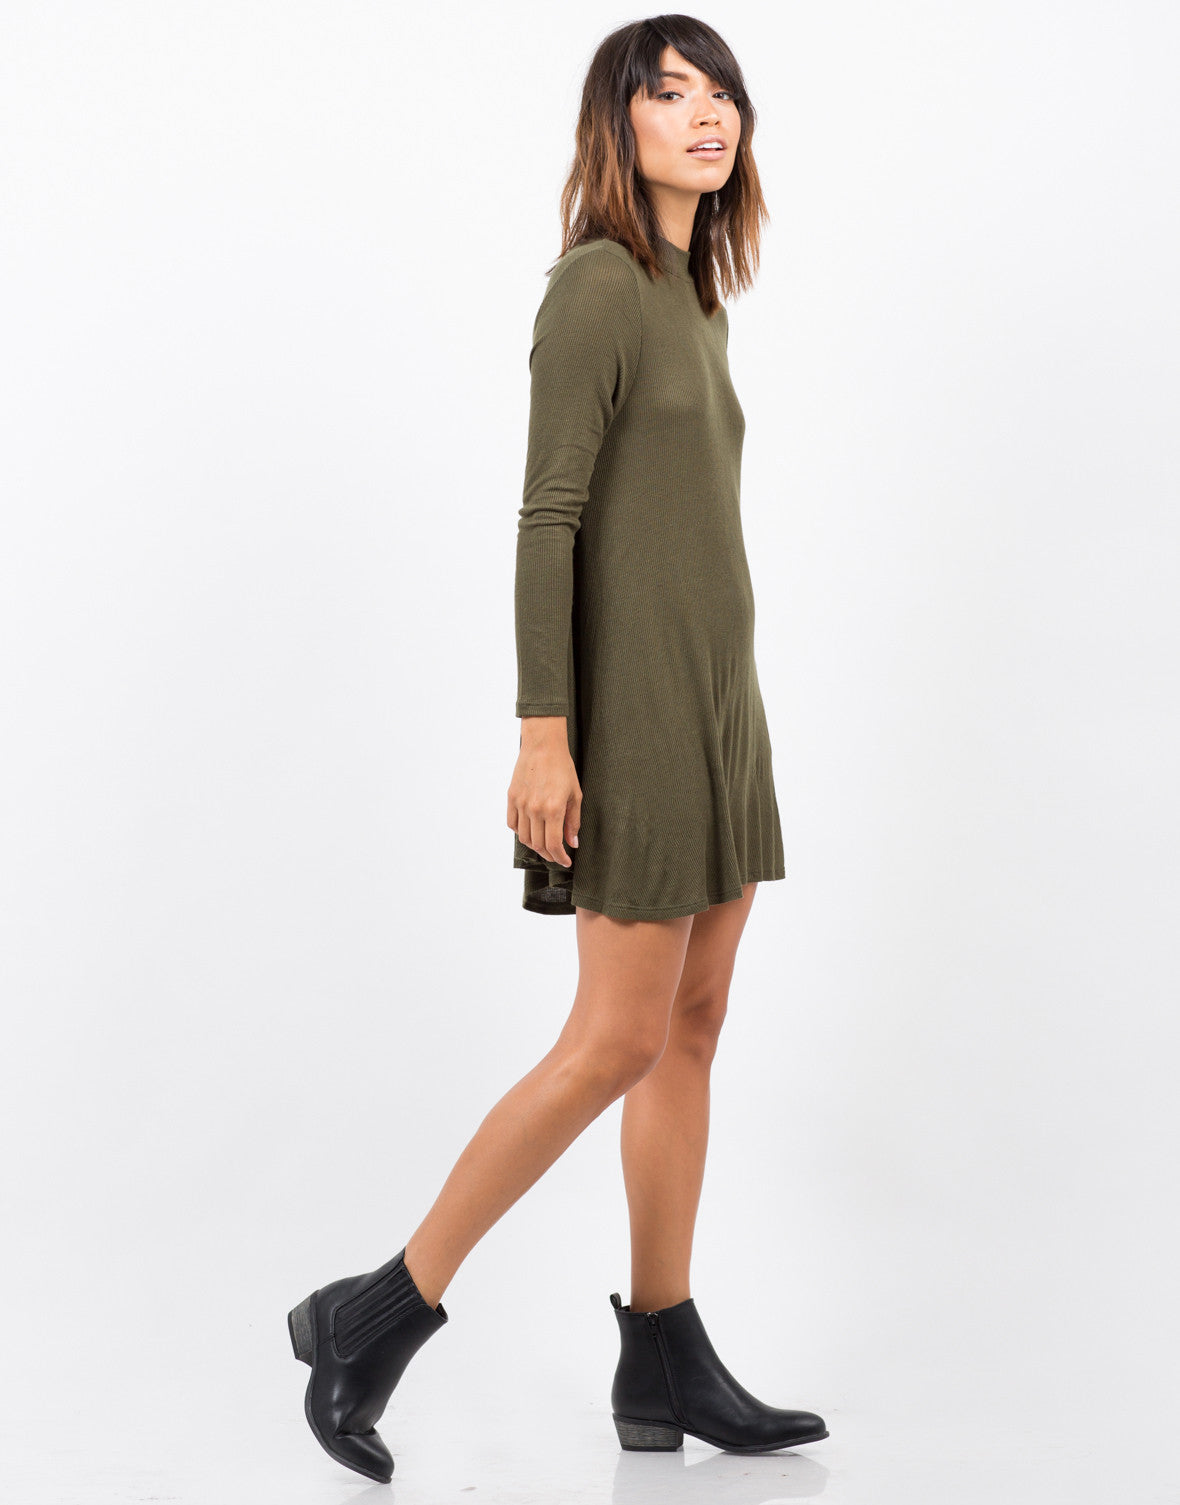 1d56f6328a80 Ribbed Mock Neck Swing Dress - Green Dress - Day Dress – 2020AVE